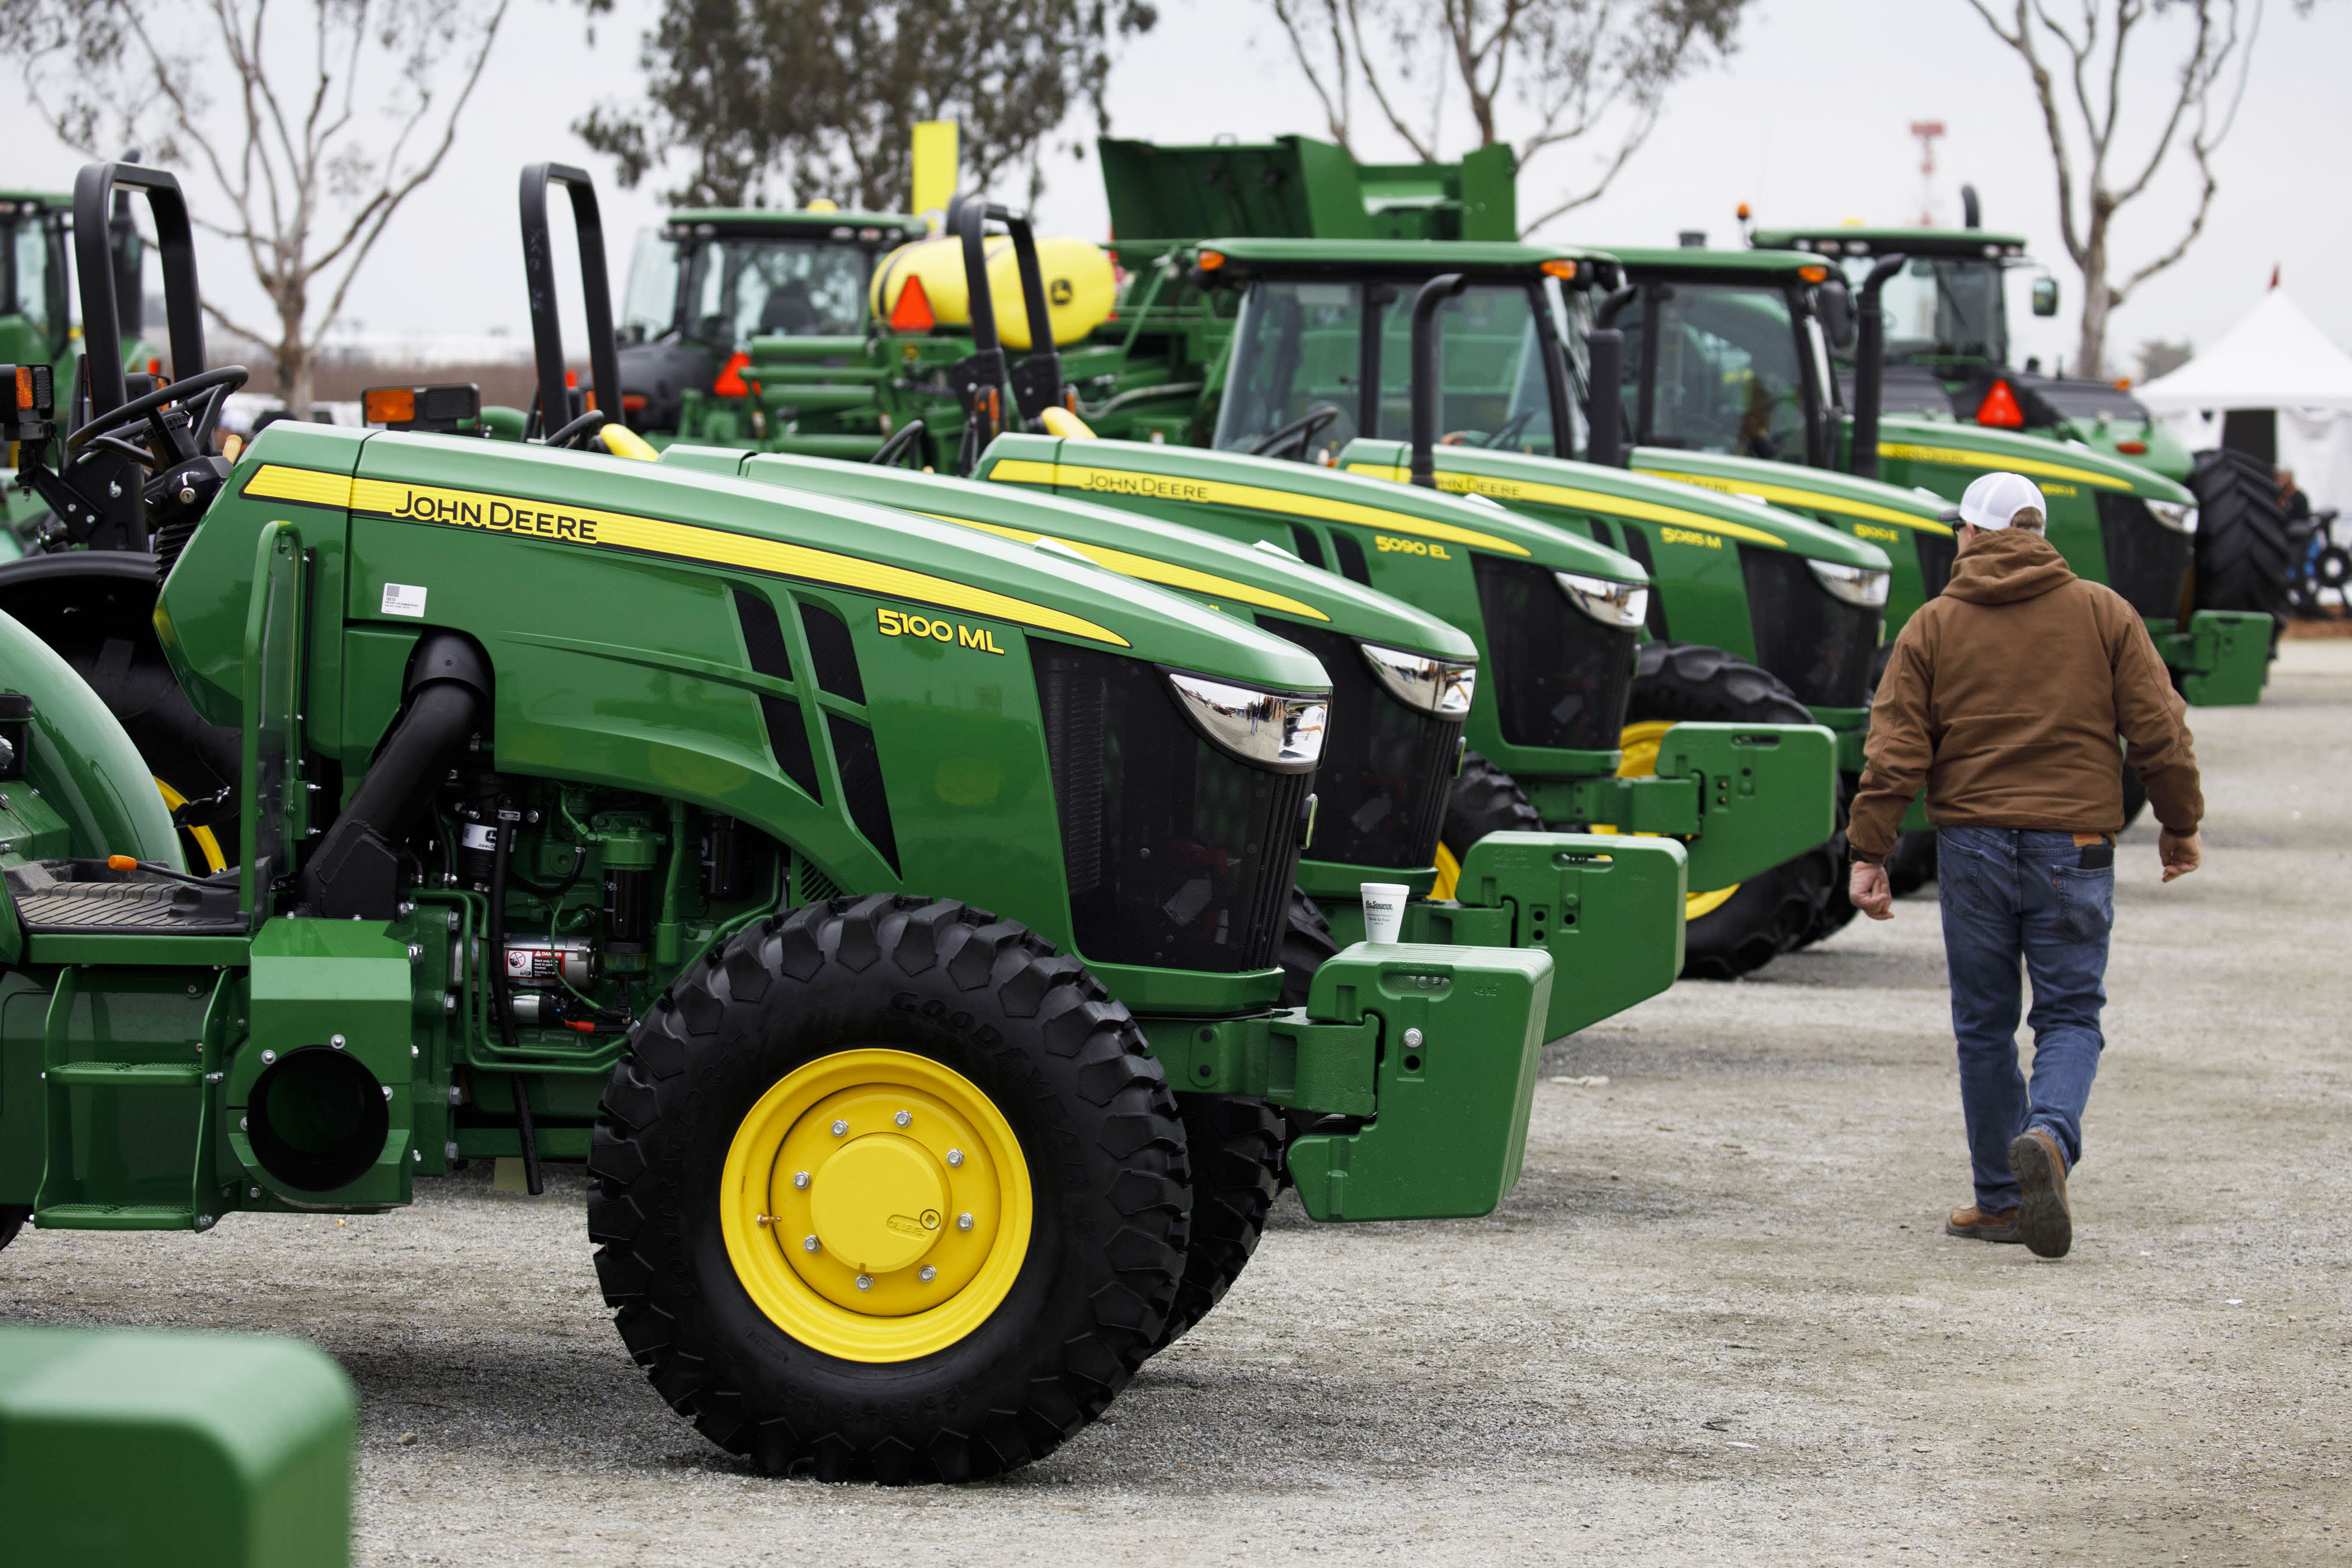 An attendee passes in front of John Deere brand tractors displayed during the World Agriculture Expo in Tulare, California, on Tuesday, Feb. 12, 2019.